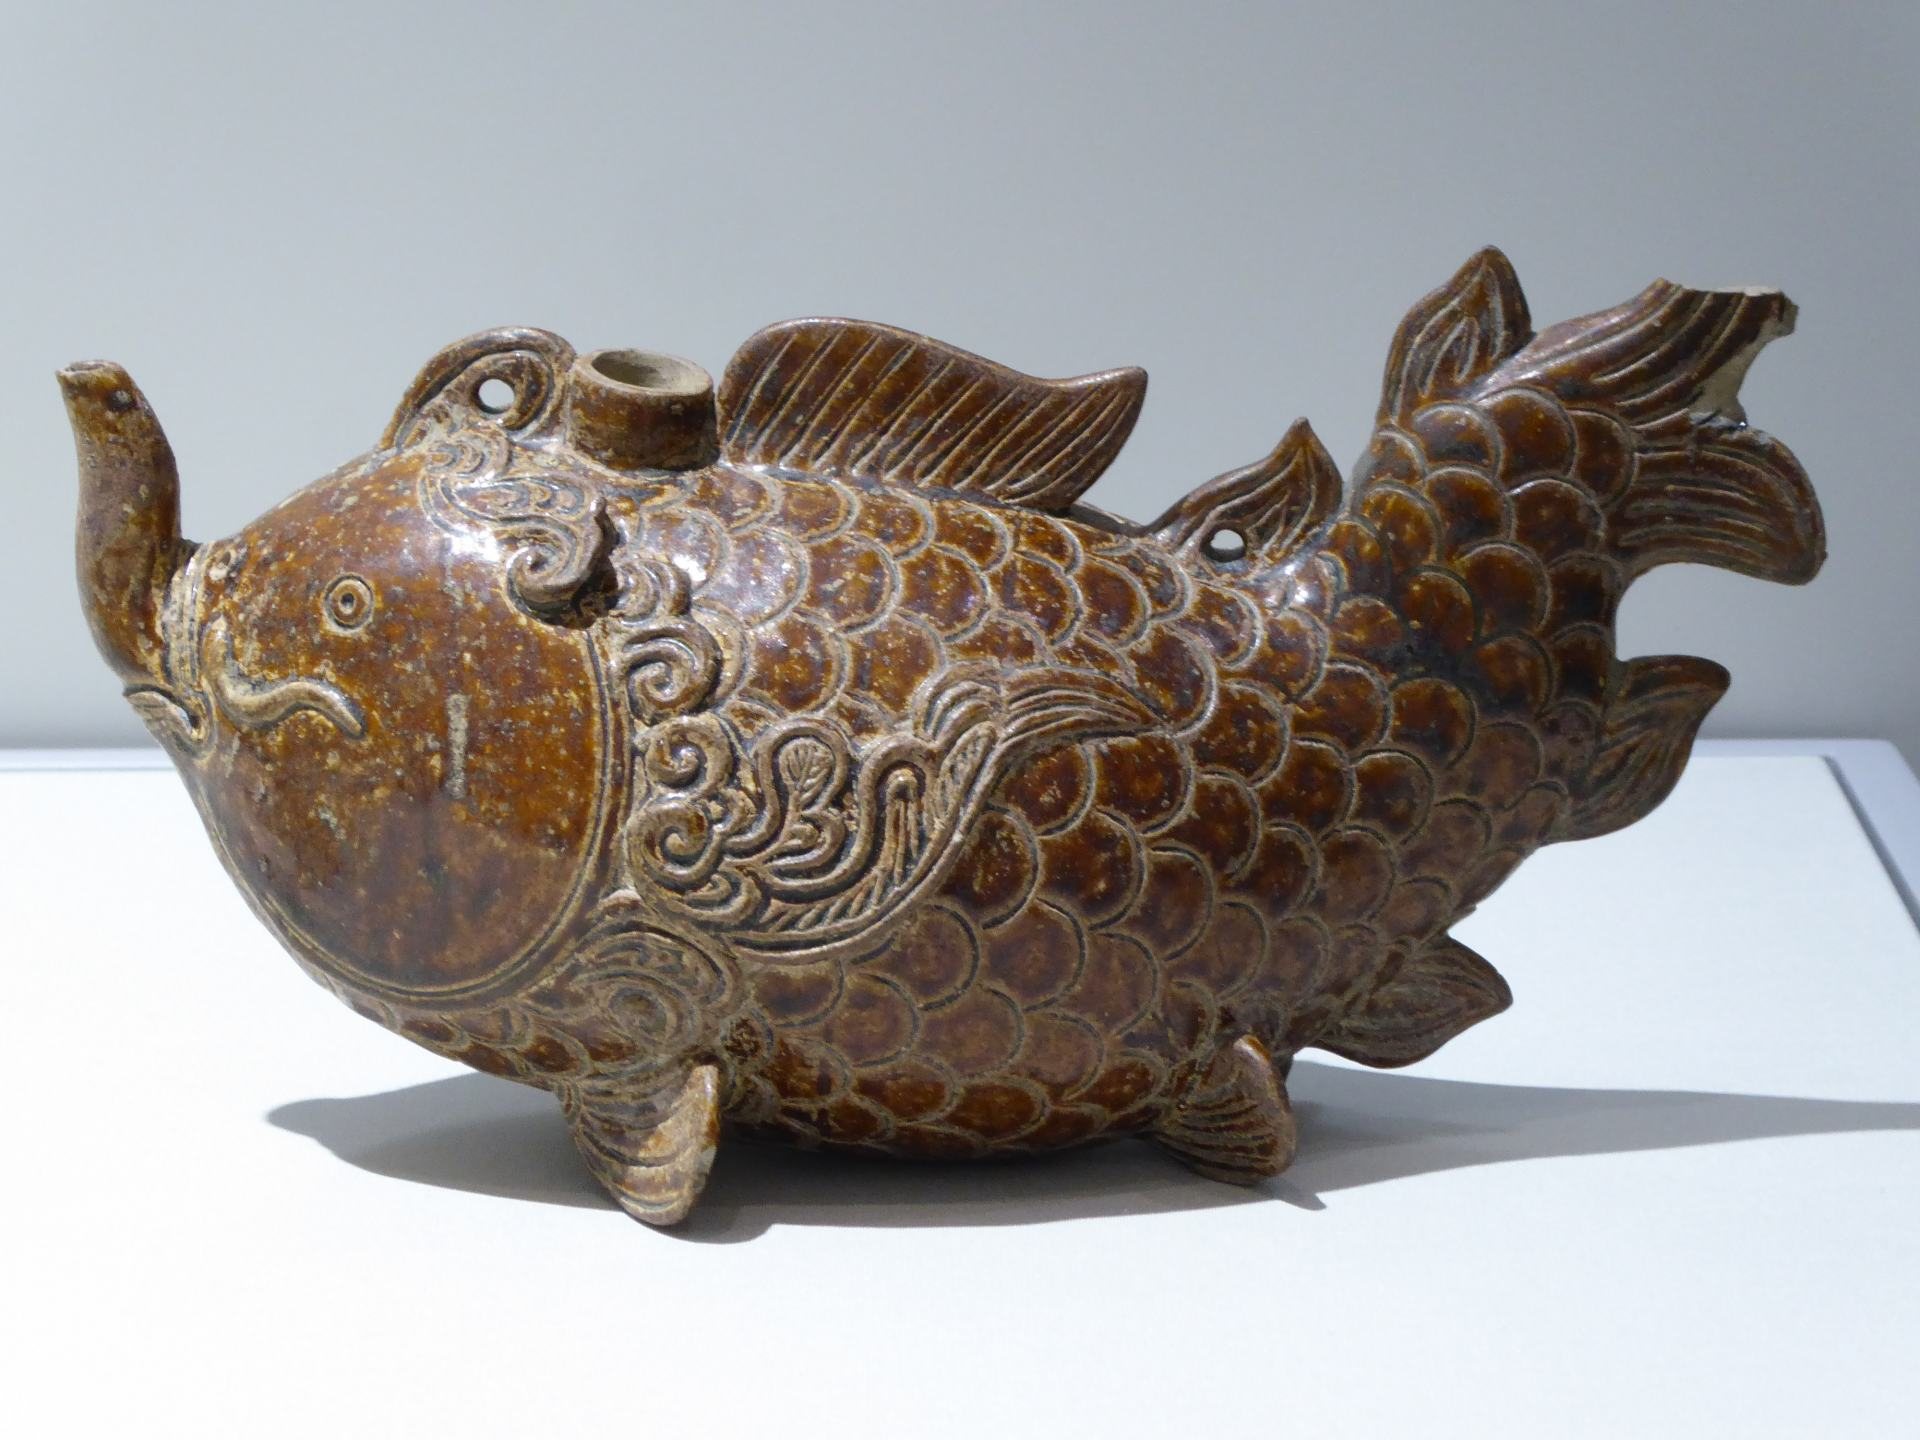 A Vietnamese Pitcher in the form of a fish, displayed at The Asian Civilisations Museum in Singapore. One of the best Museums In Southeast Asia